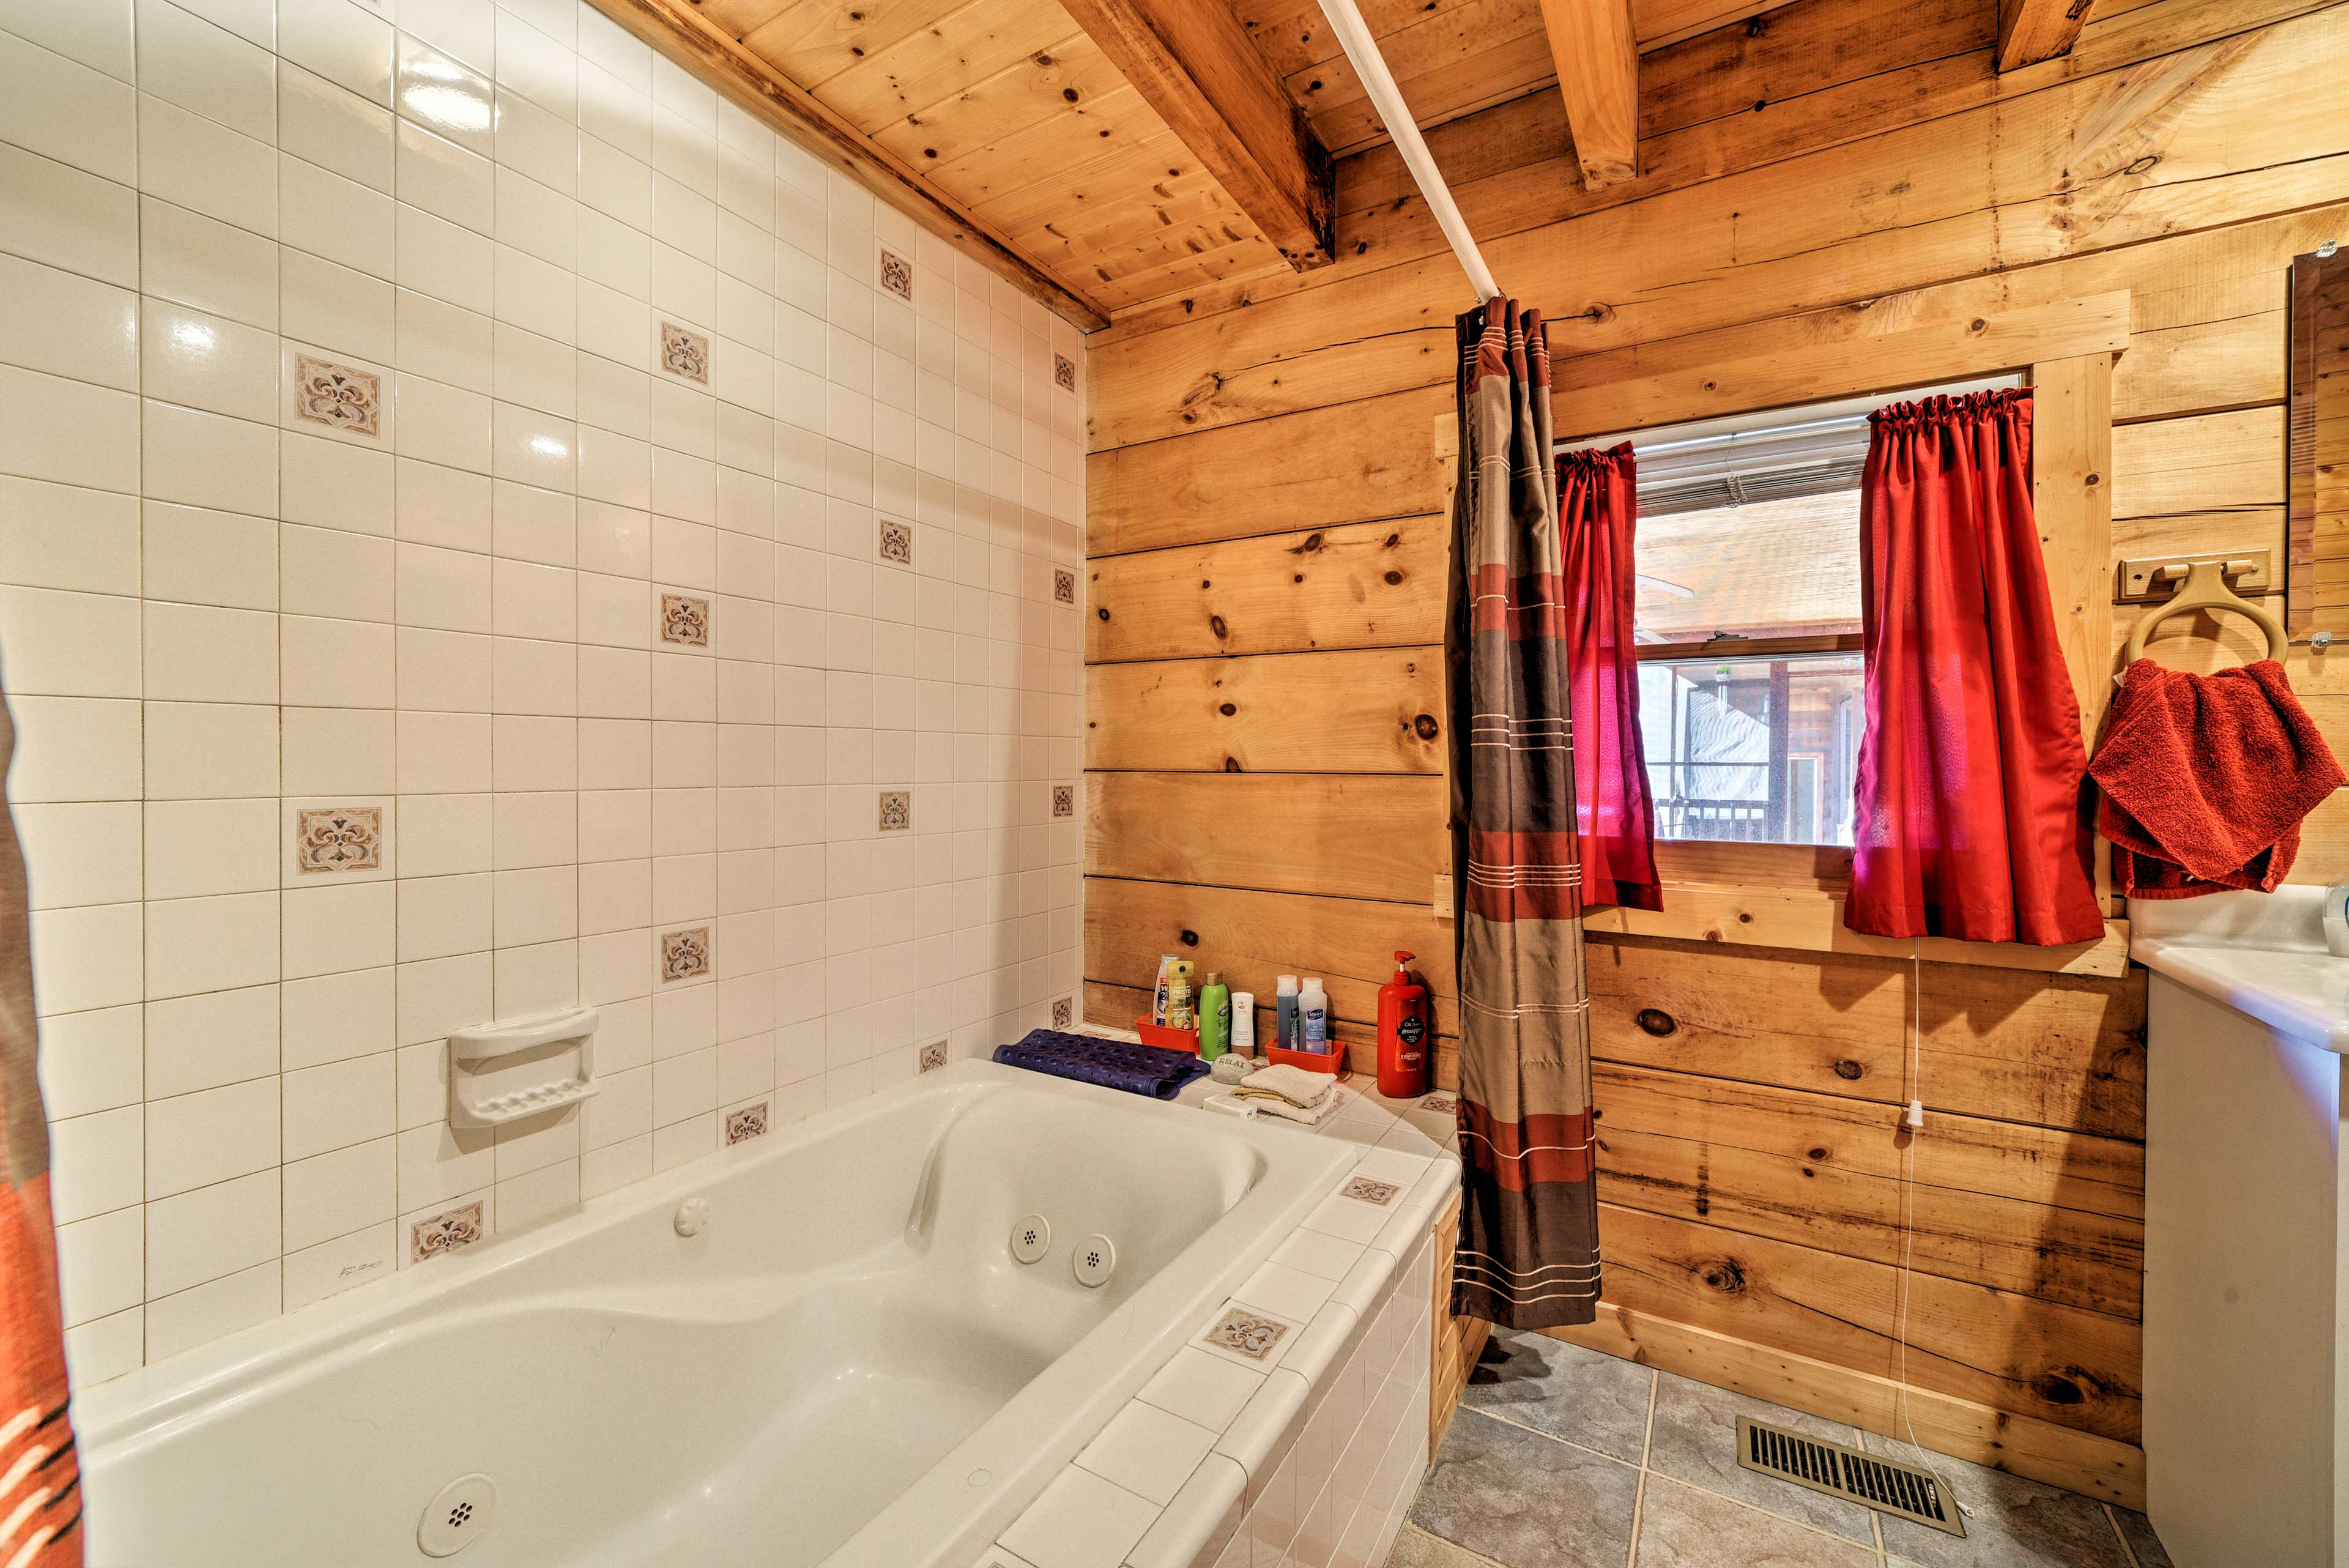 Soak in the jetted tub or turn up the heat and take a steamy shower.